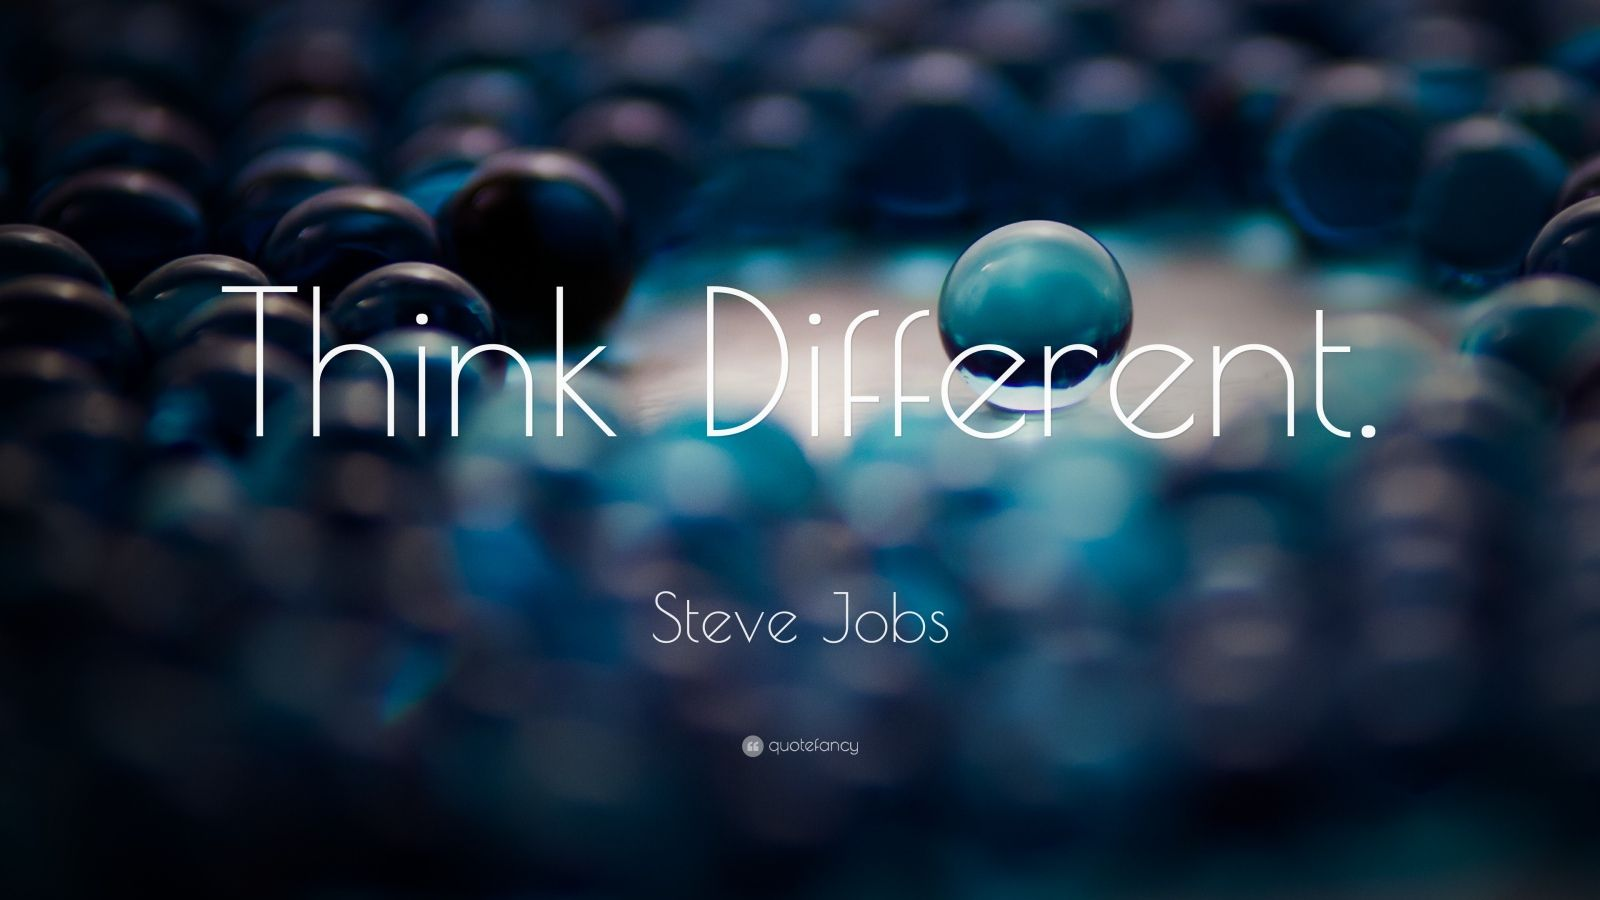 See 6 Best Images Of Think Different Steve Jobs Quote. Inspiring Think  Different Steve Jobs Quote Design Images. Steve Jobs Think Different Quote  Steve Jobs ...